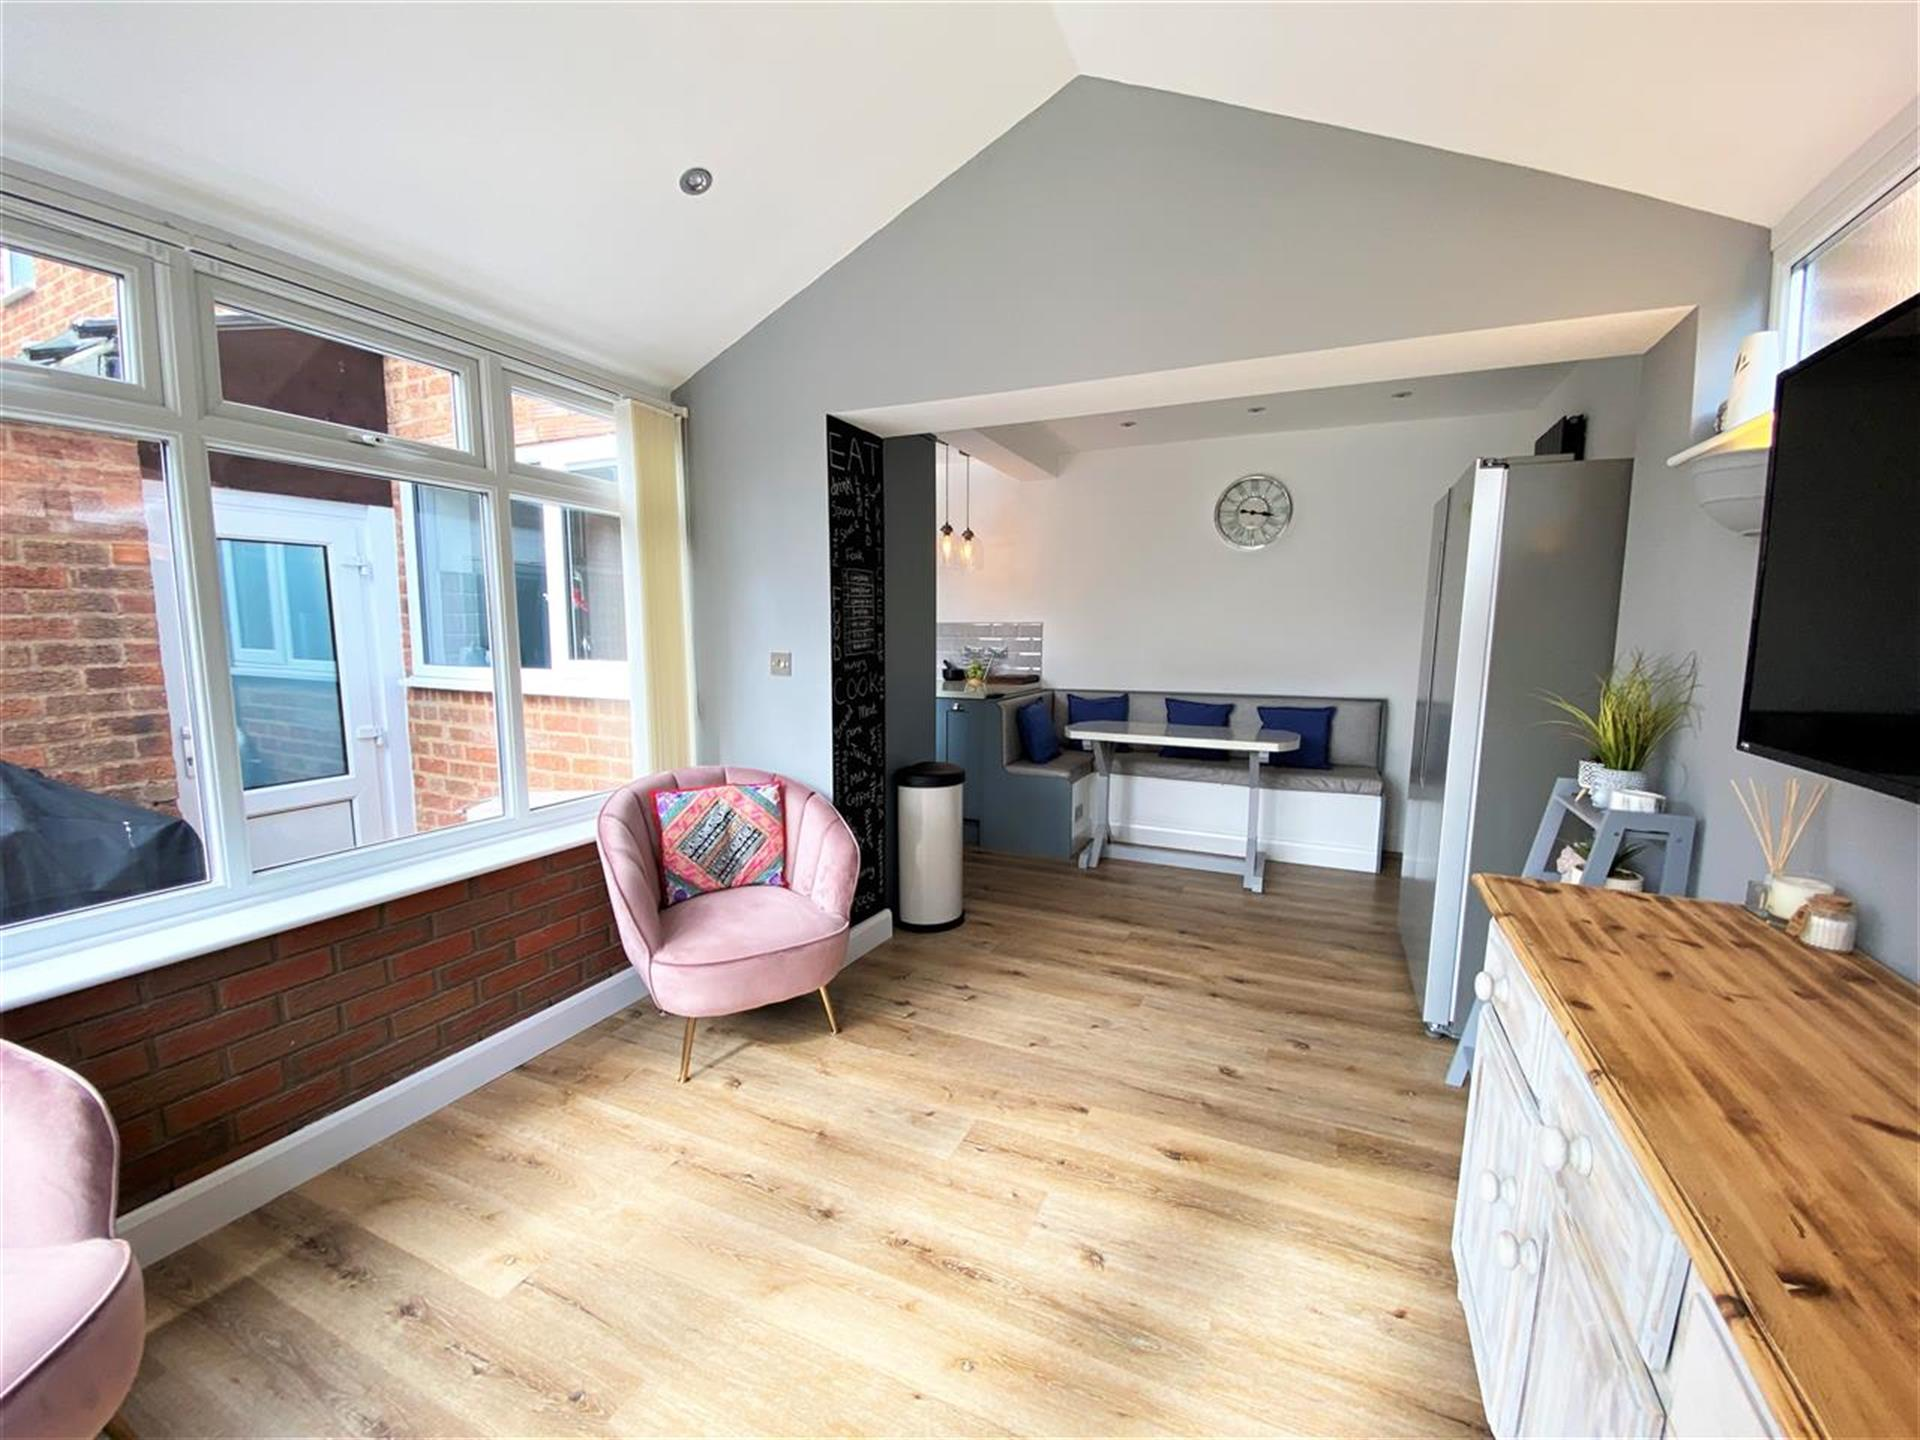 2 Bedroom Terraced House For Sale - Image 7